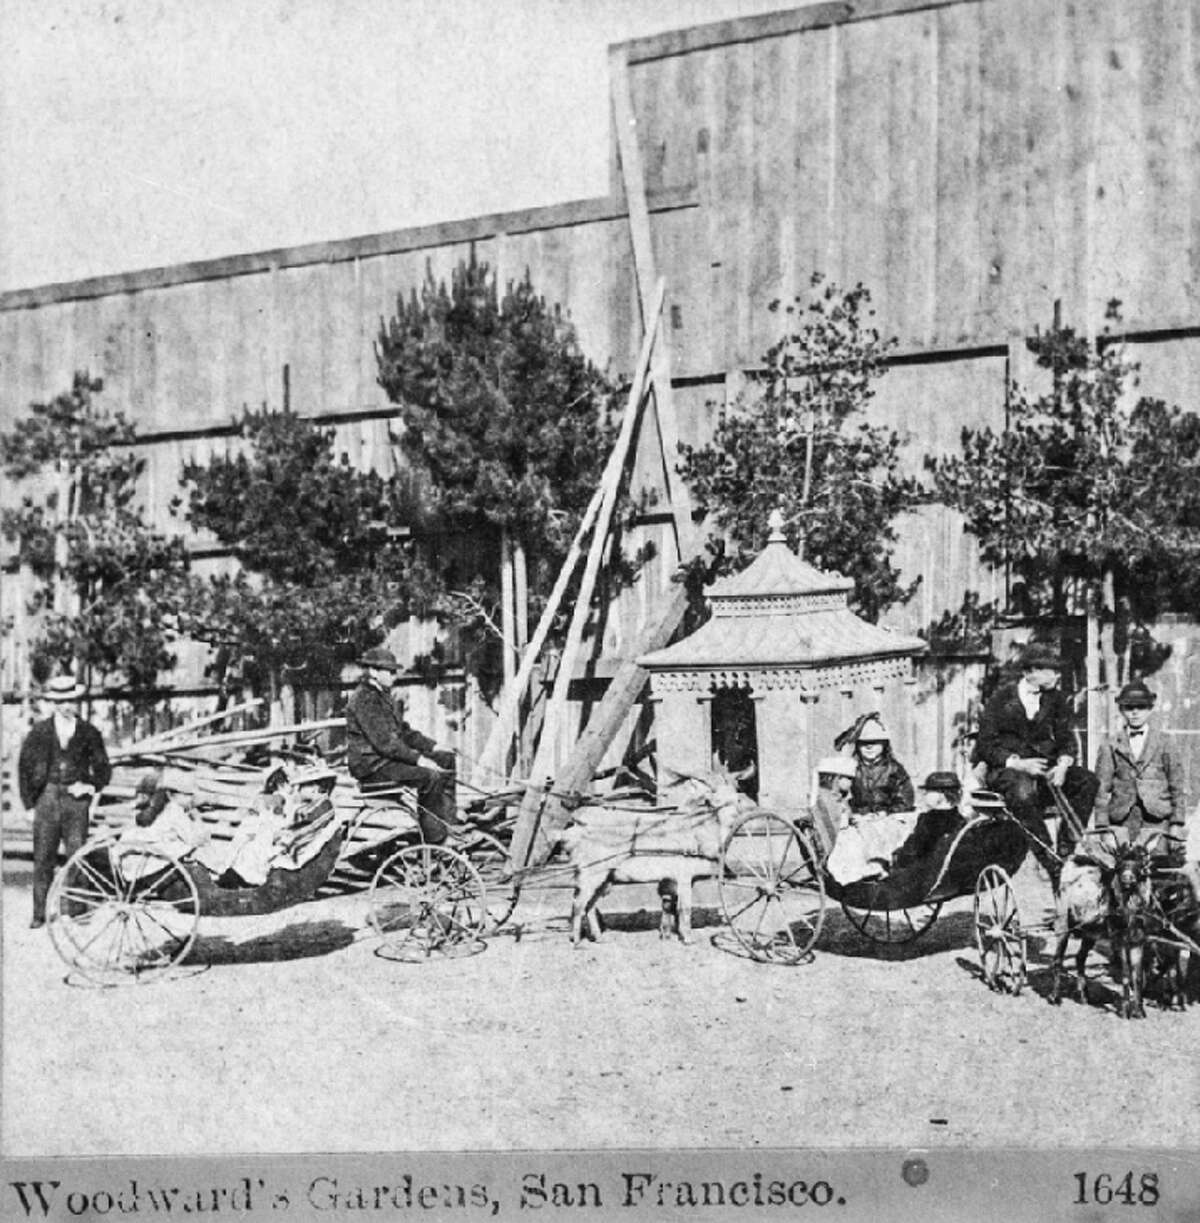 Valencia and 15th Streets A scene from Woodward's Gardens, an amusement park, zoo and museum that operated in the Mission District between 1866 and 1891.